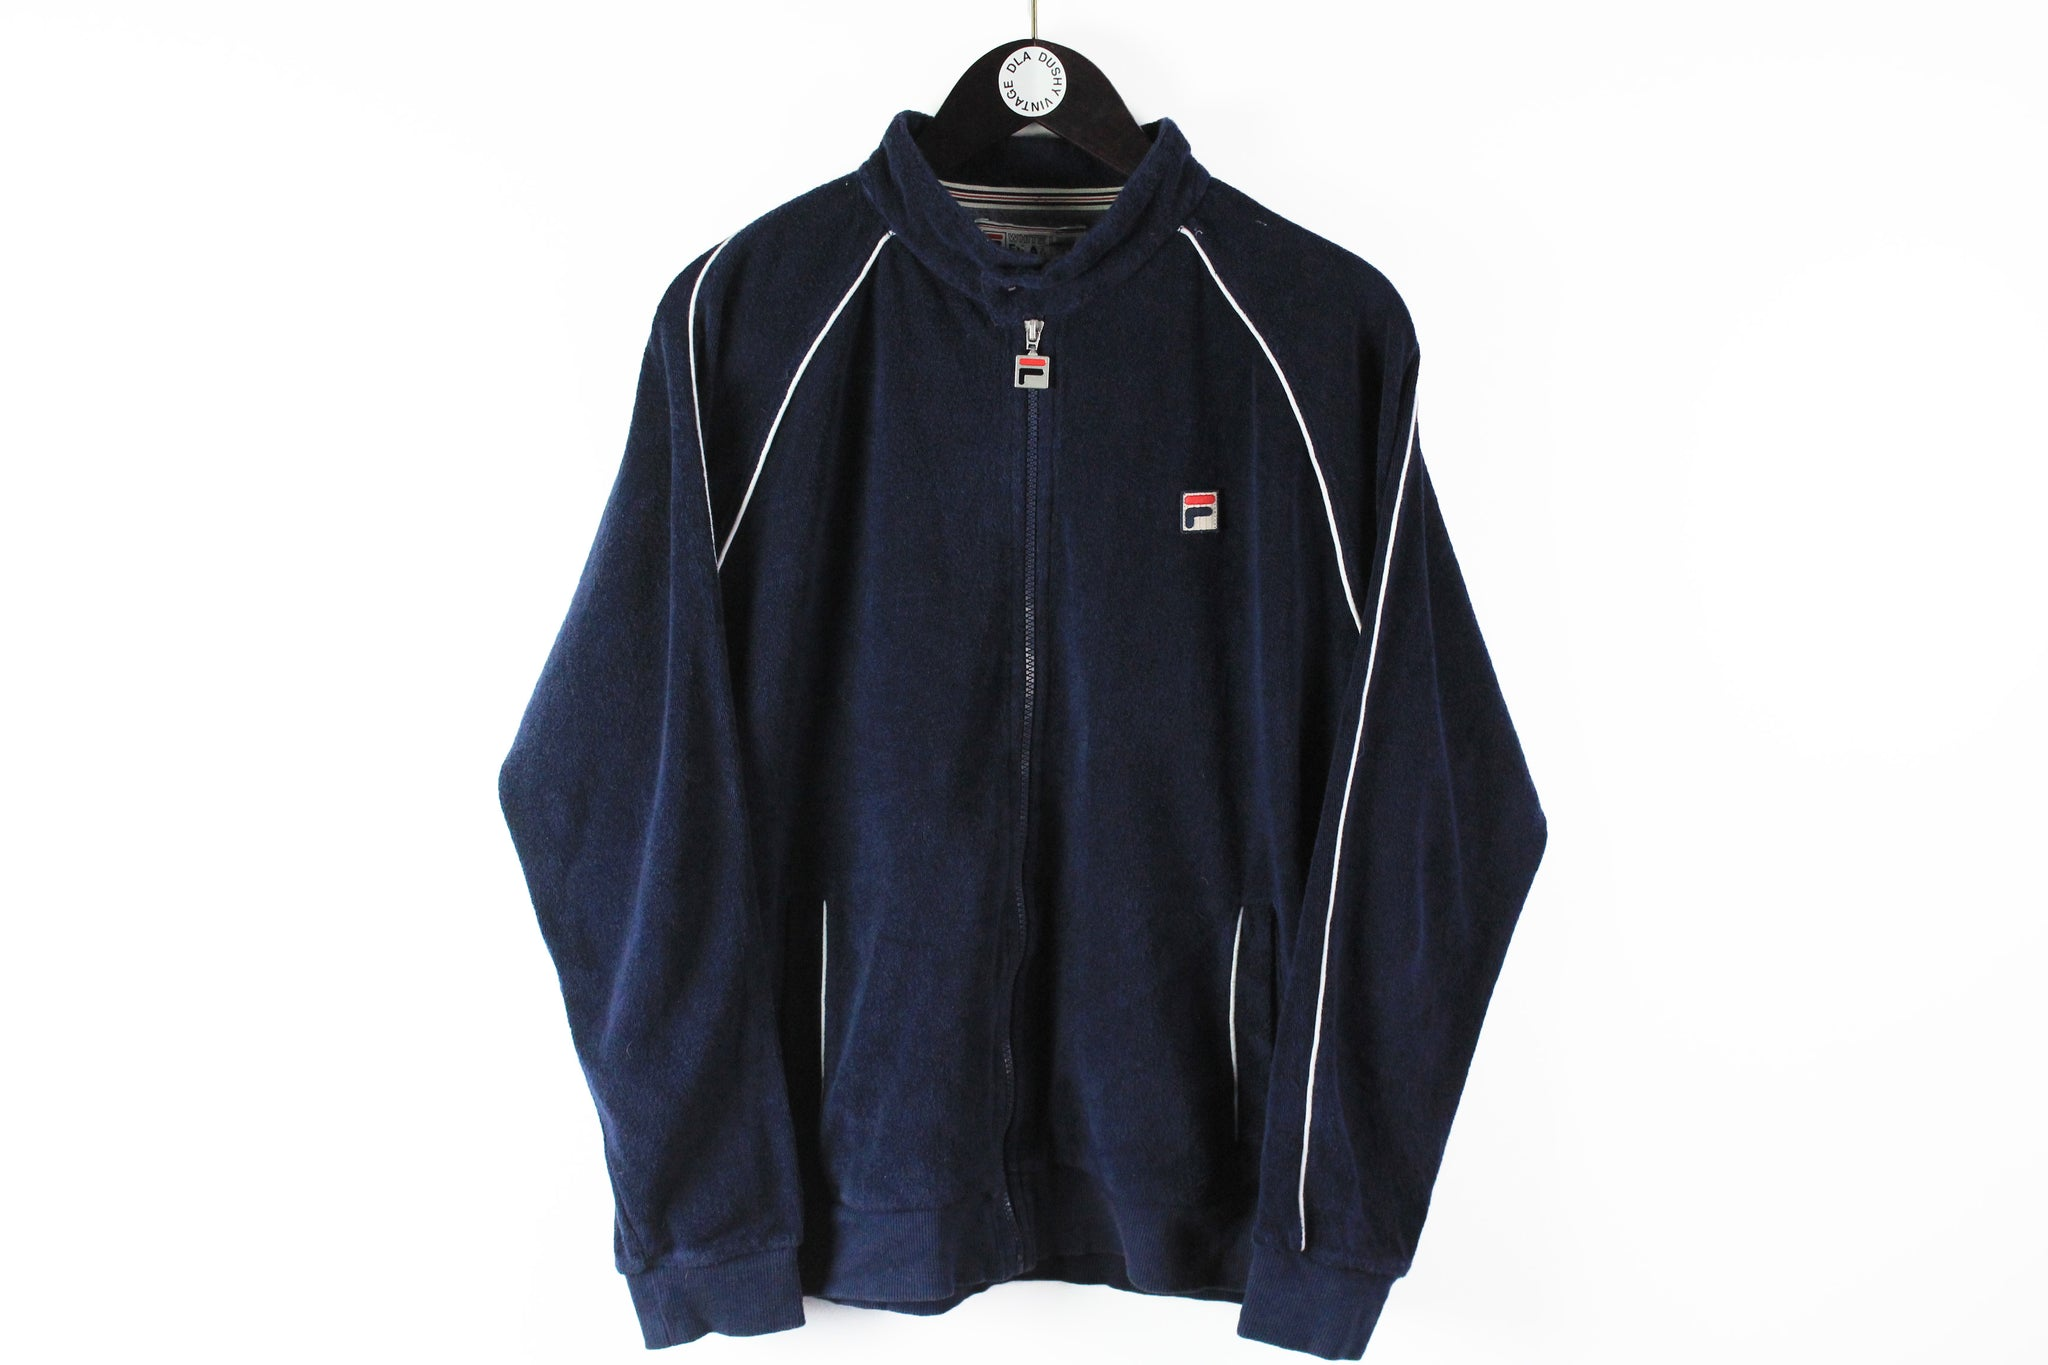 Vintage Fila White Line Track Jacket Large blue 90s full zip